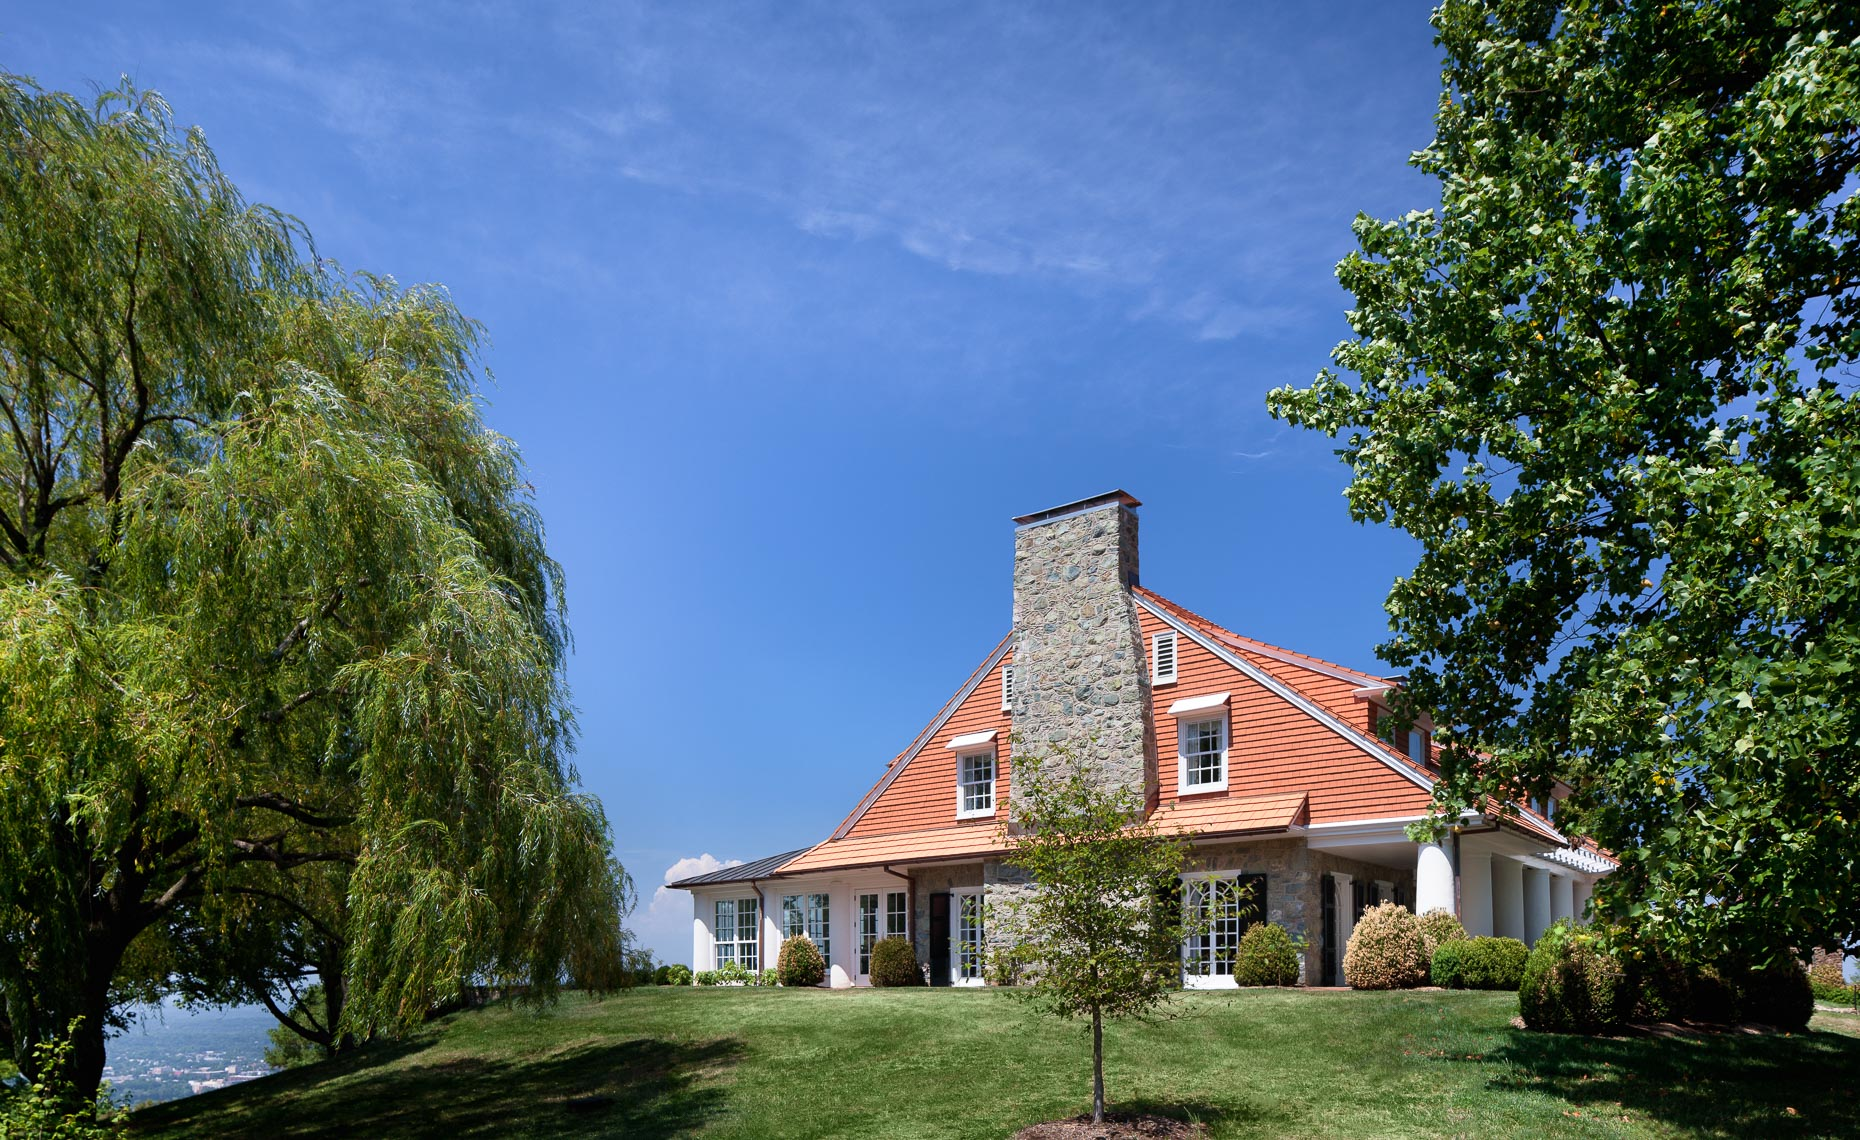 Virginia Hamrick Photography - Robert H. Smith Center at Montalto - Hospitality